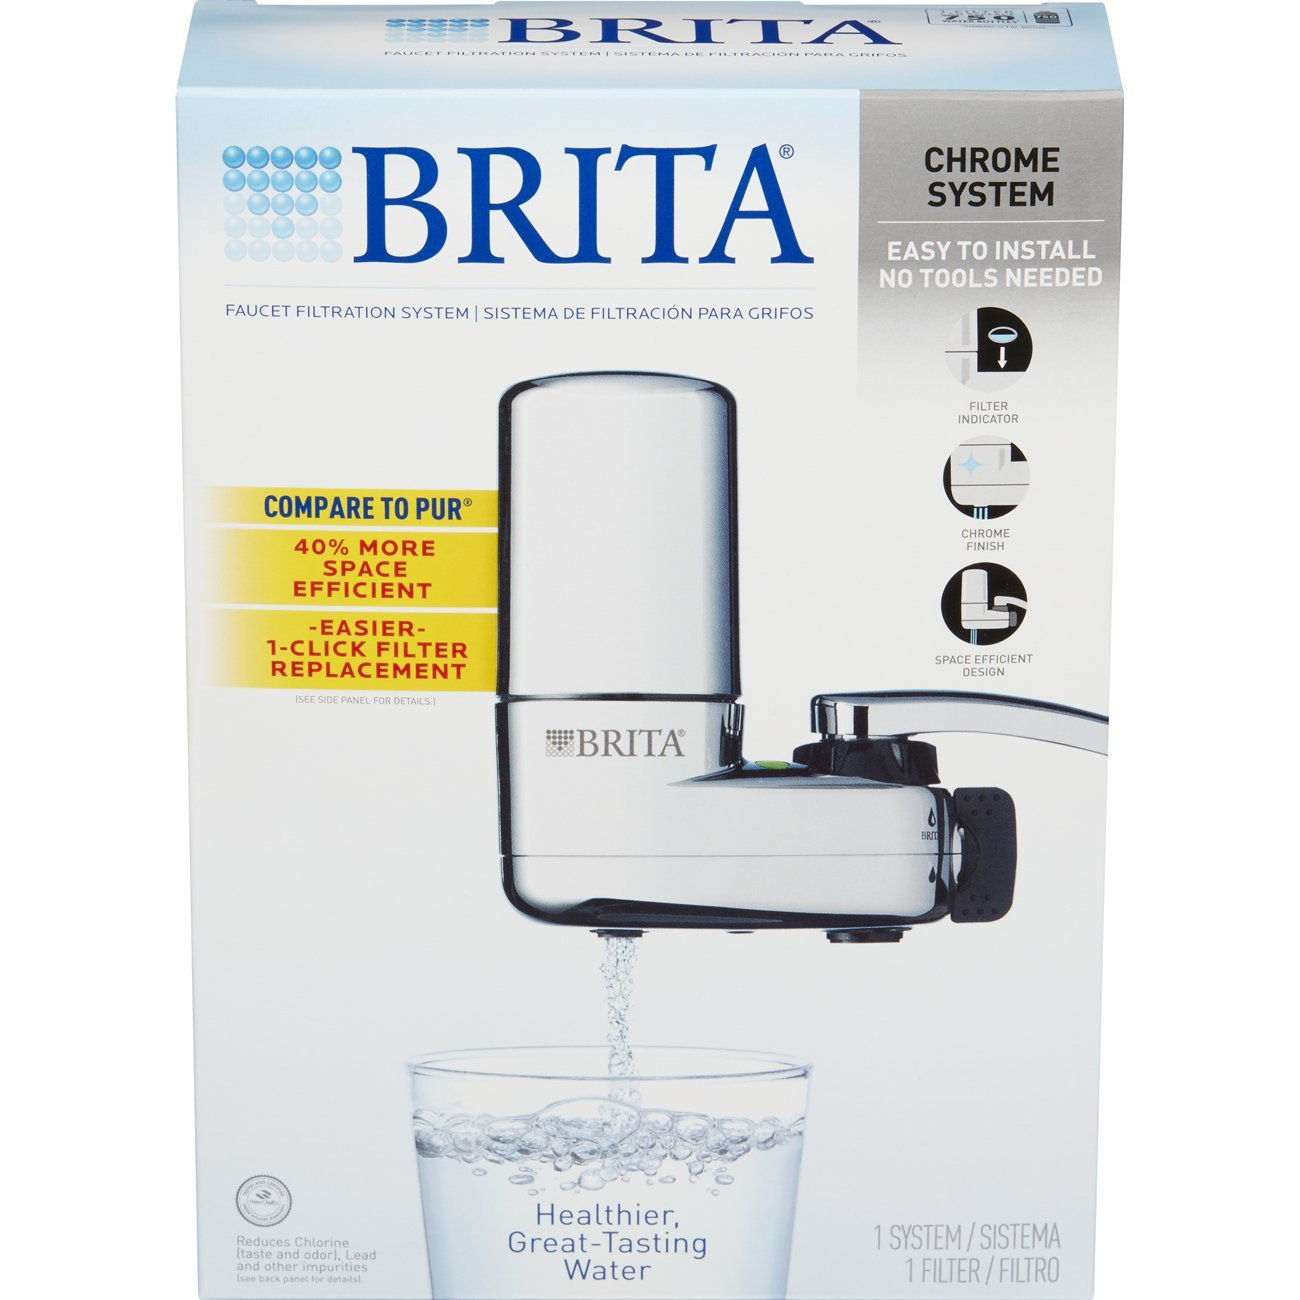 Faucet water filter for kitchen sink brita for kitchen - Brita On Tap Chrome Water Faucet Filtration System Fits Standard Faucets Only Chrome Kitchen Countertop Water Filters Amazon Com